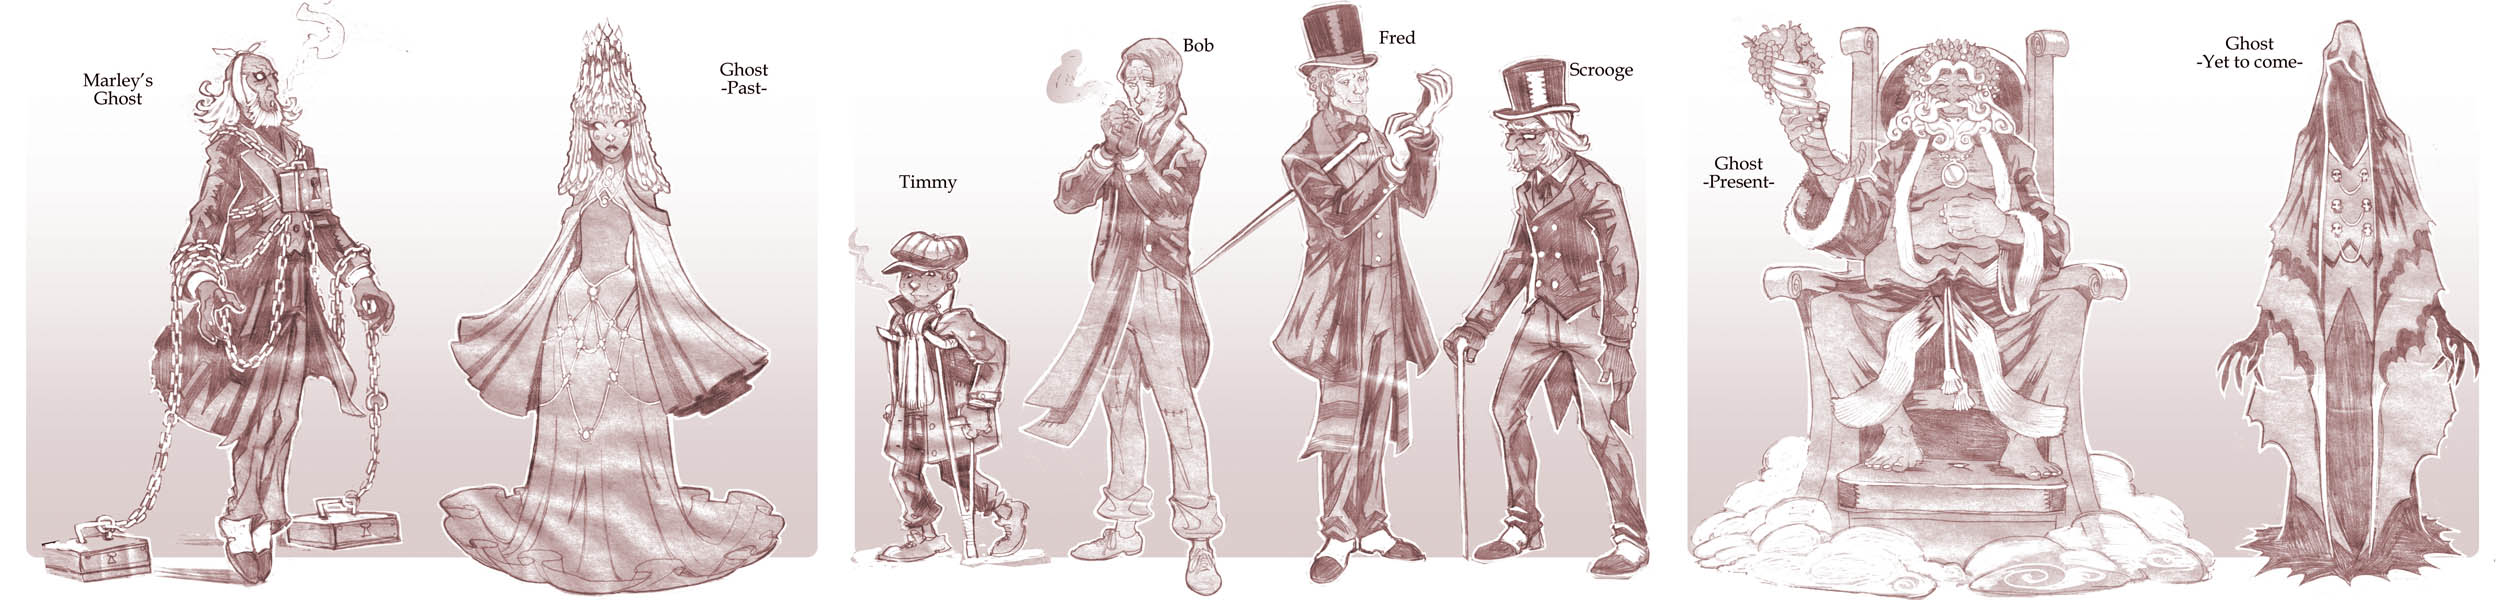 A Christmas Carol Characters.Christmas Carol Character Concepts By Nezart On Deviantart